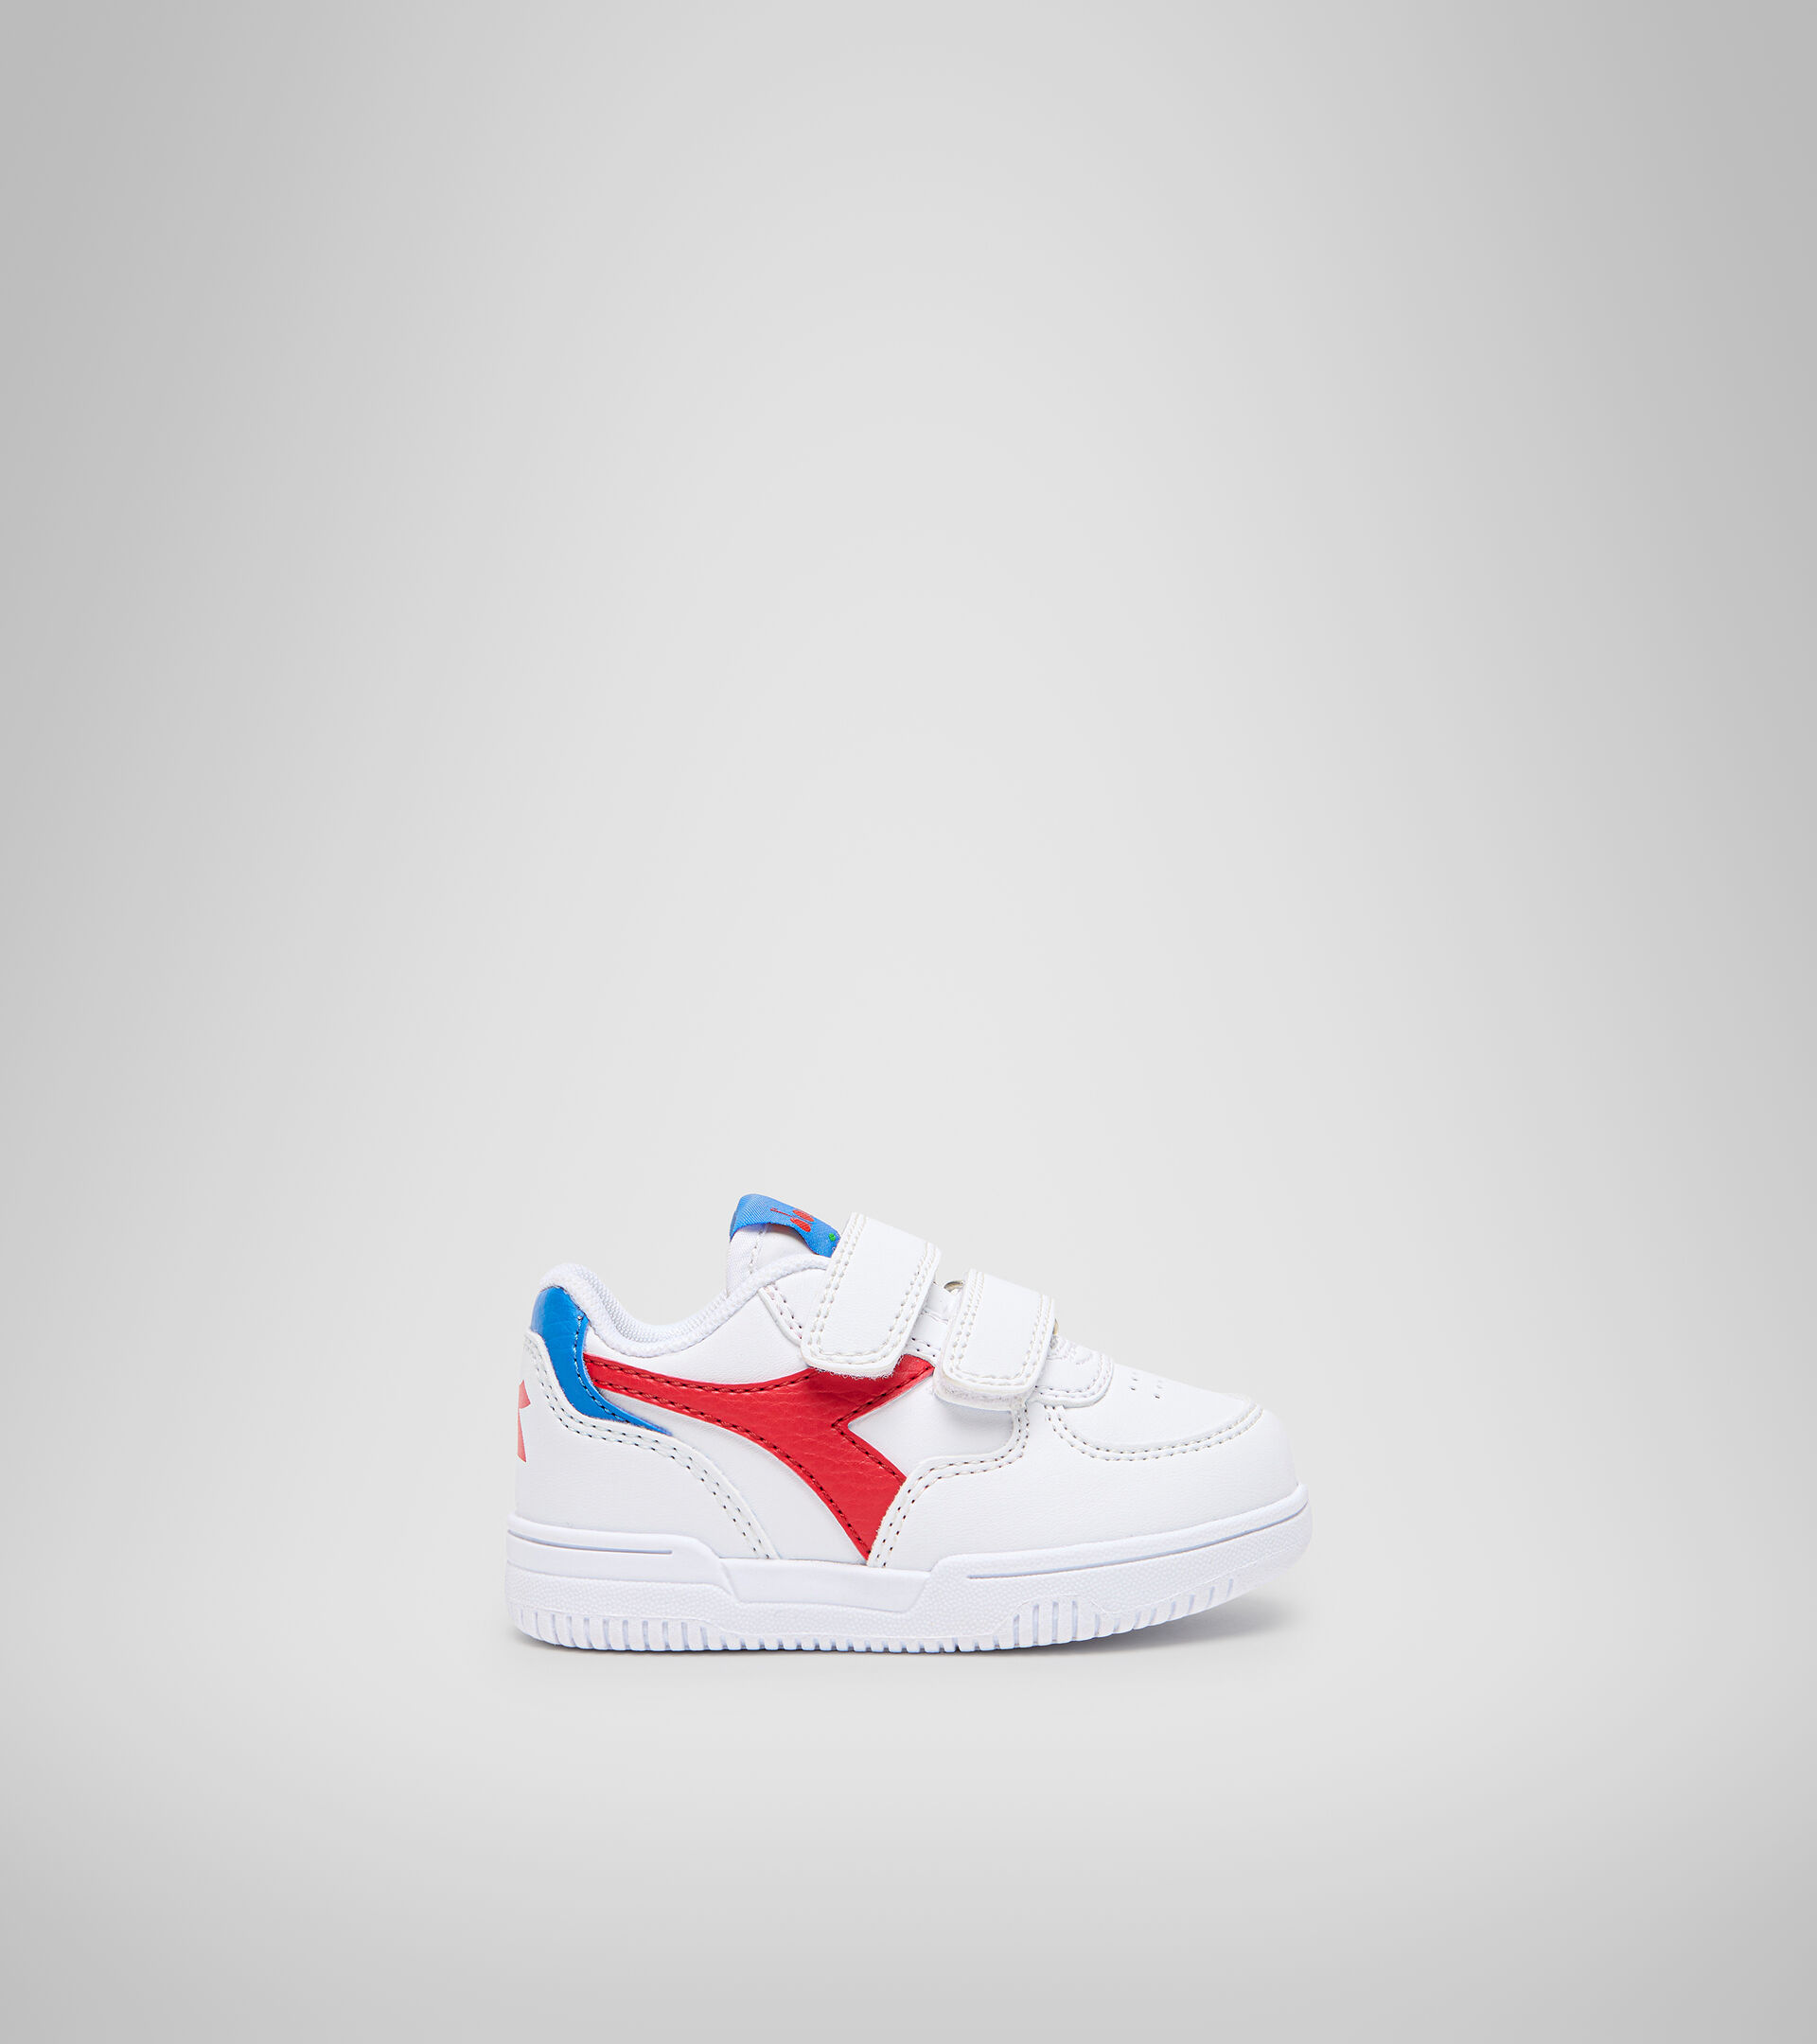 Sports shoes - Toddlers 1-4 years RAPTOR LOW TD WHITE/TOMATO RED - Diadora